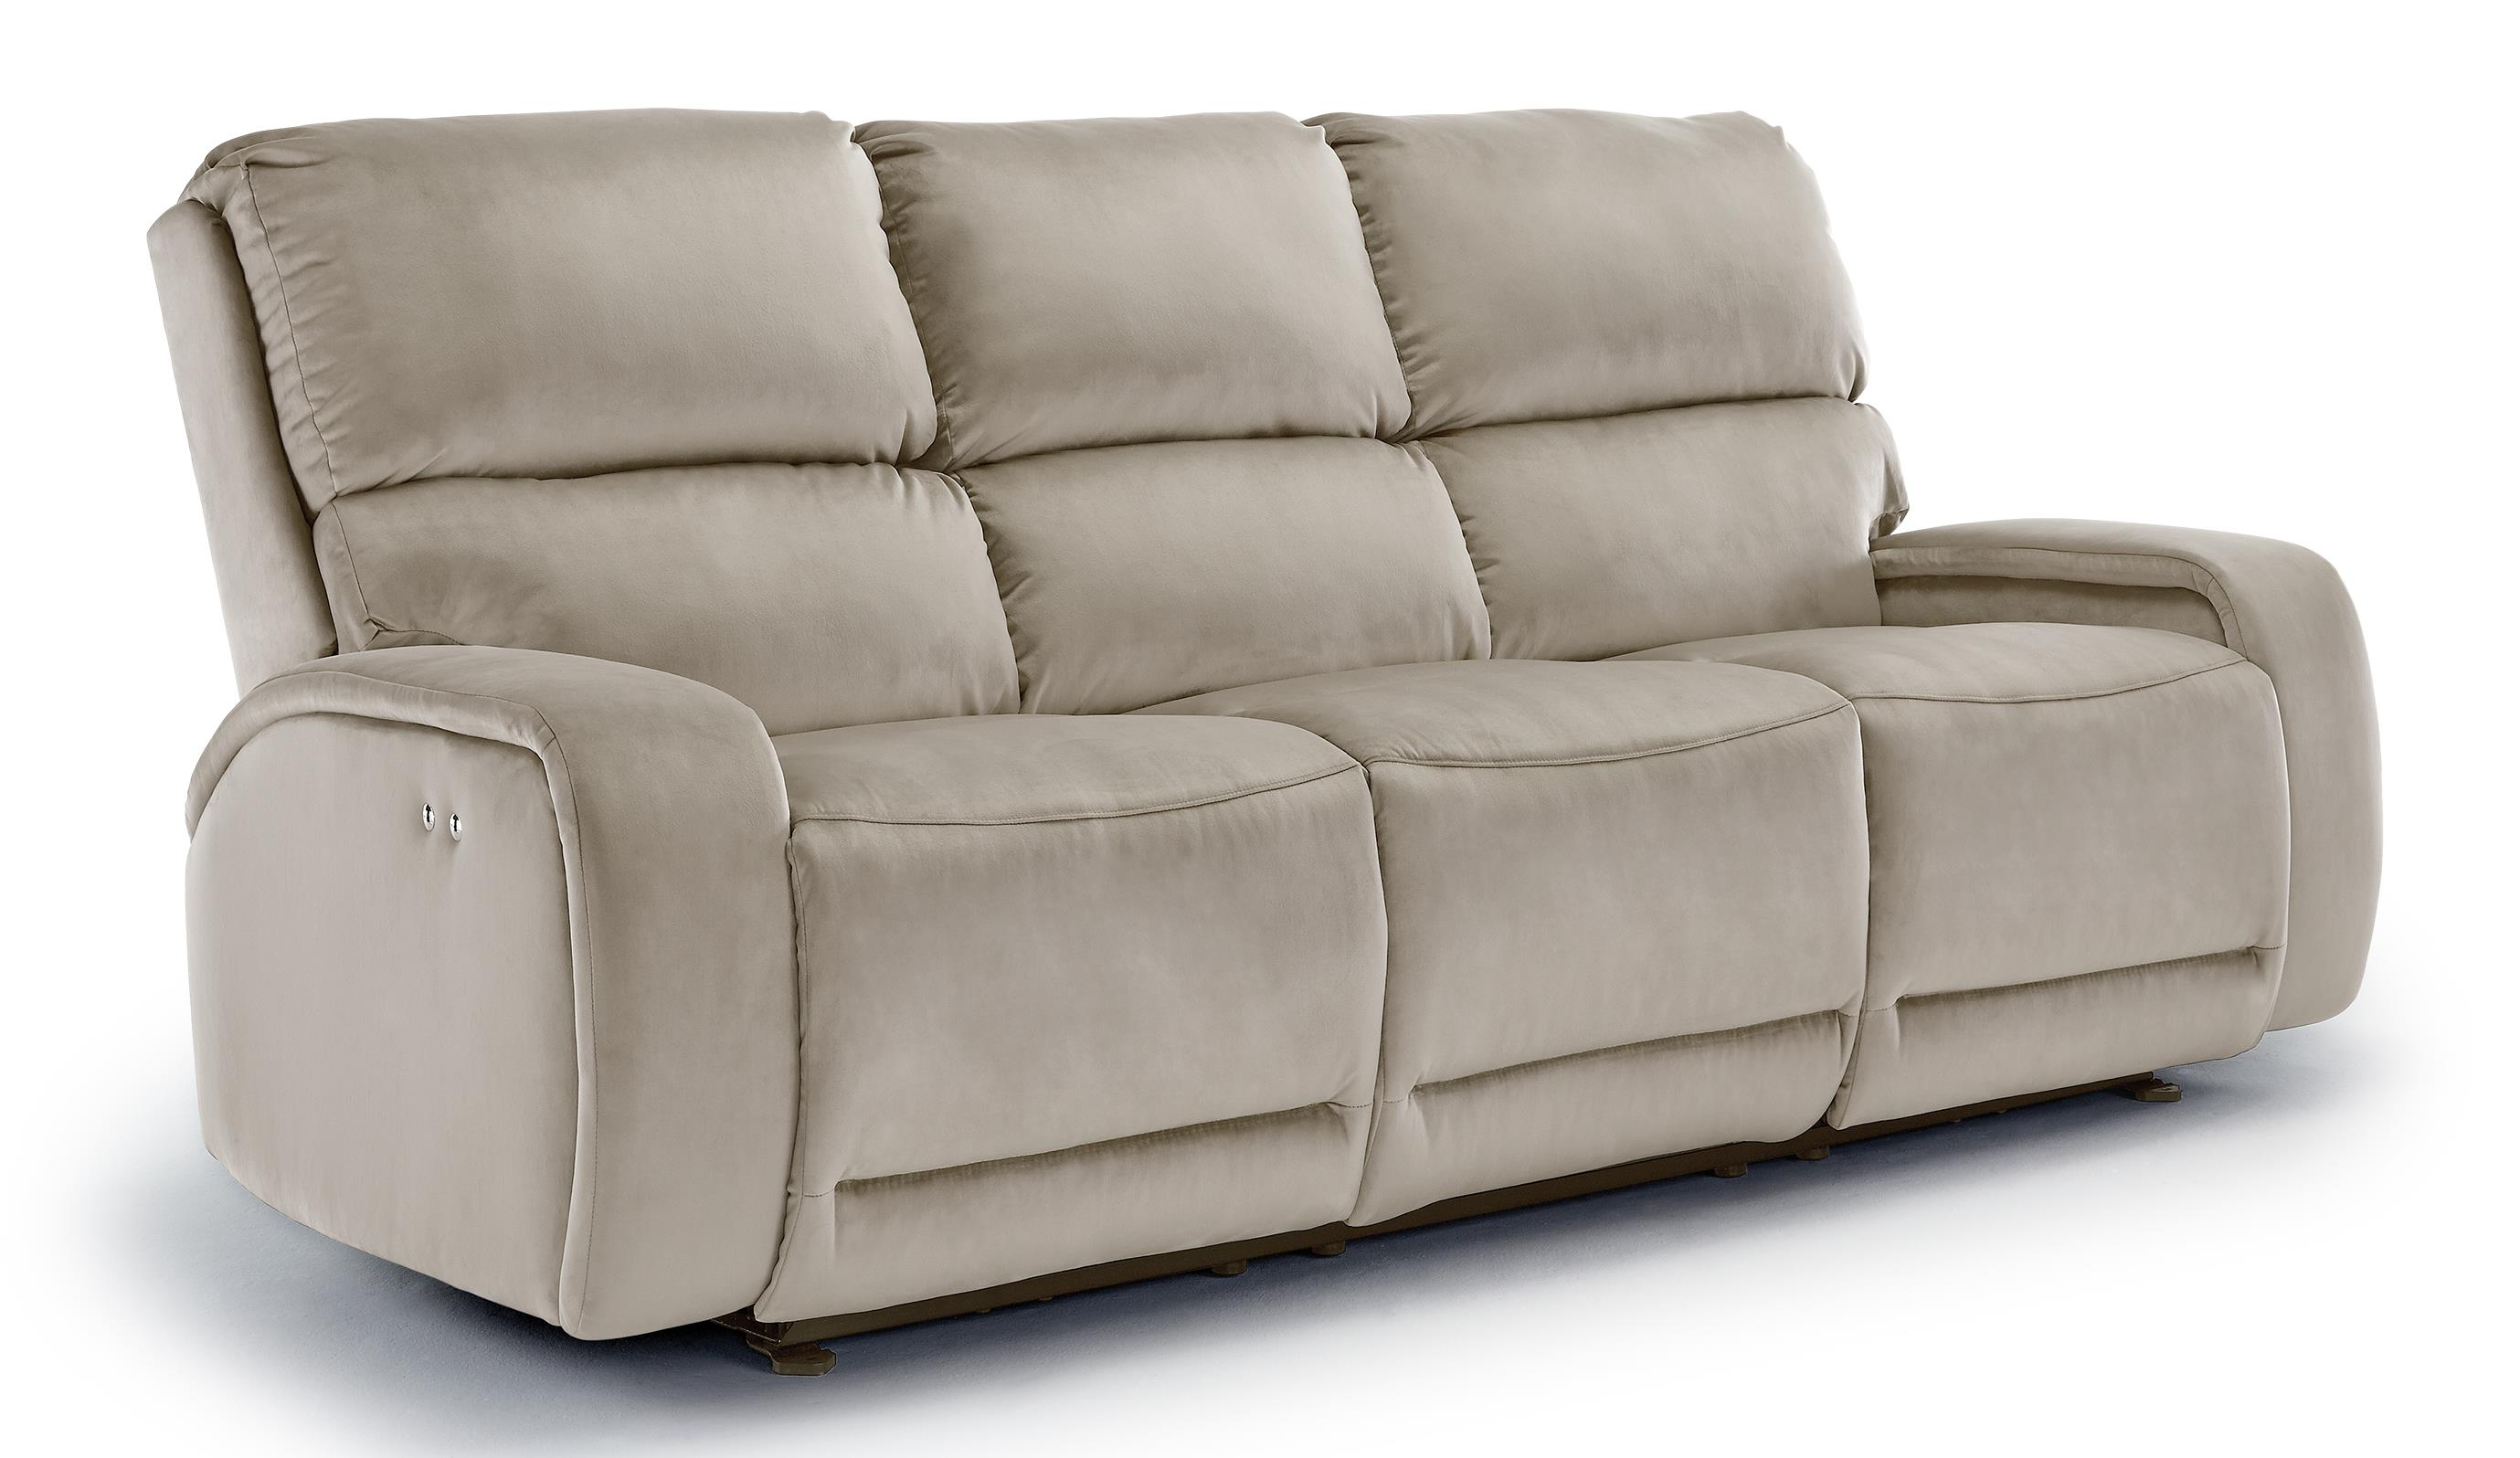 Sofa With Foam Seats Best Home Furnishings Matthew S650rp4 Power Reclining Sofa With